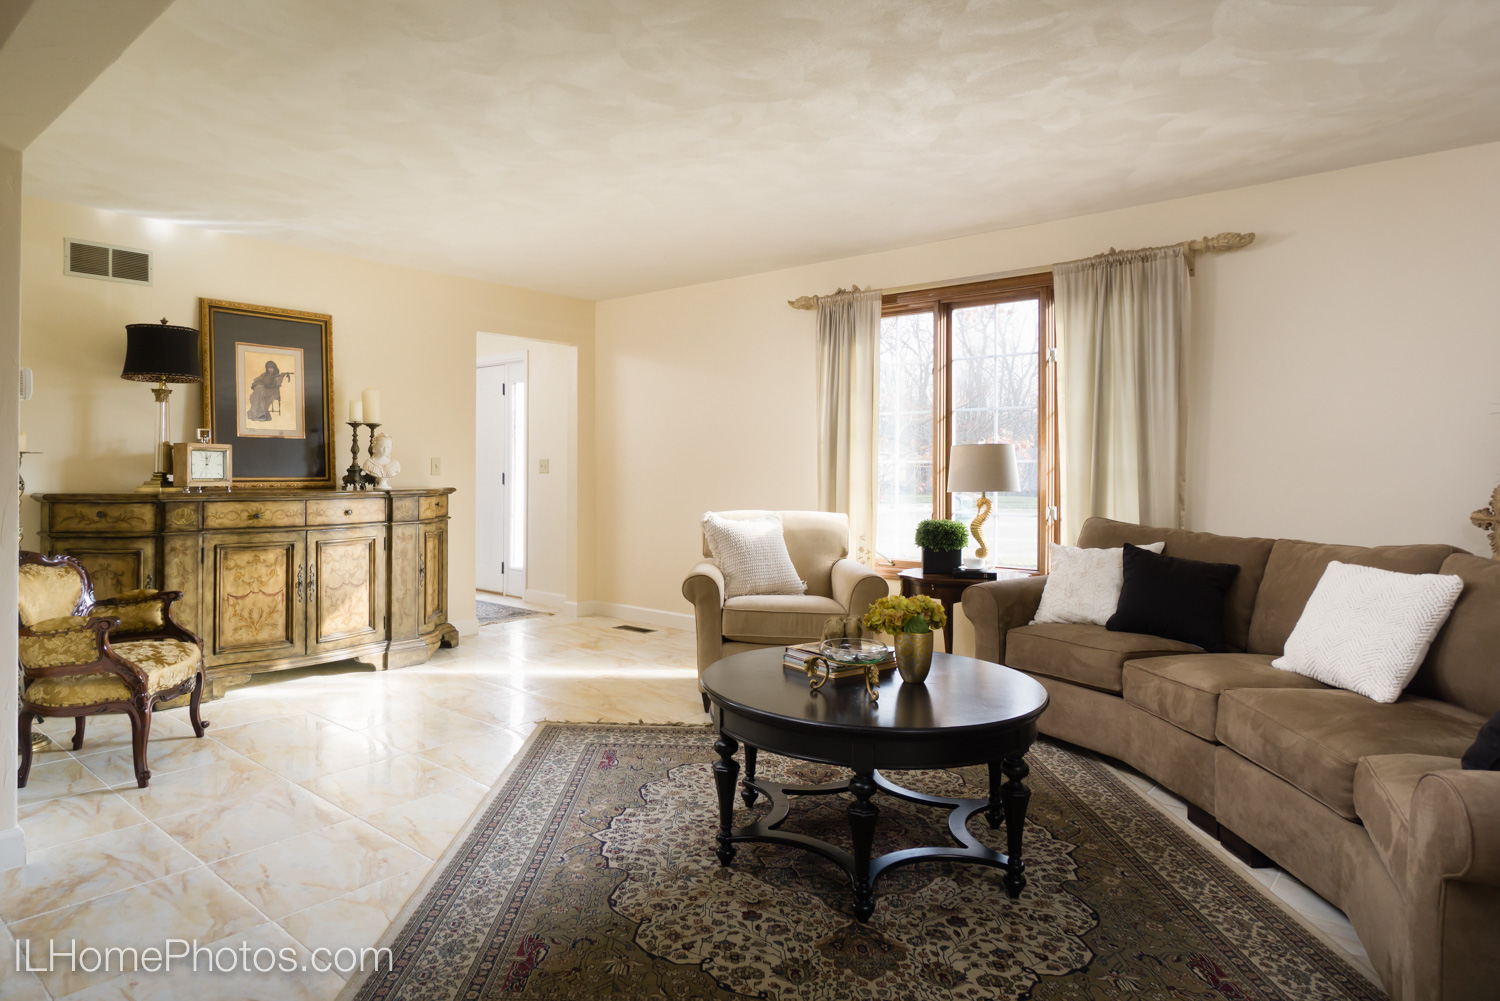 Interior living room photograph for real estate in Dunlap, IL :: Illinois Home Photography by Michael Gowin, Lincoln, IL